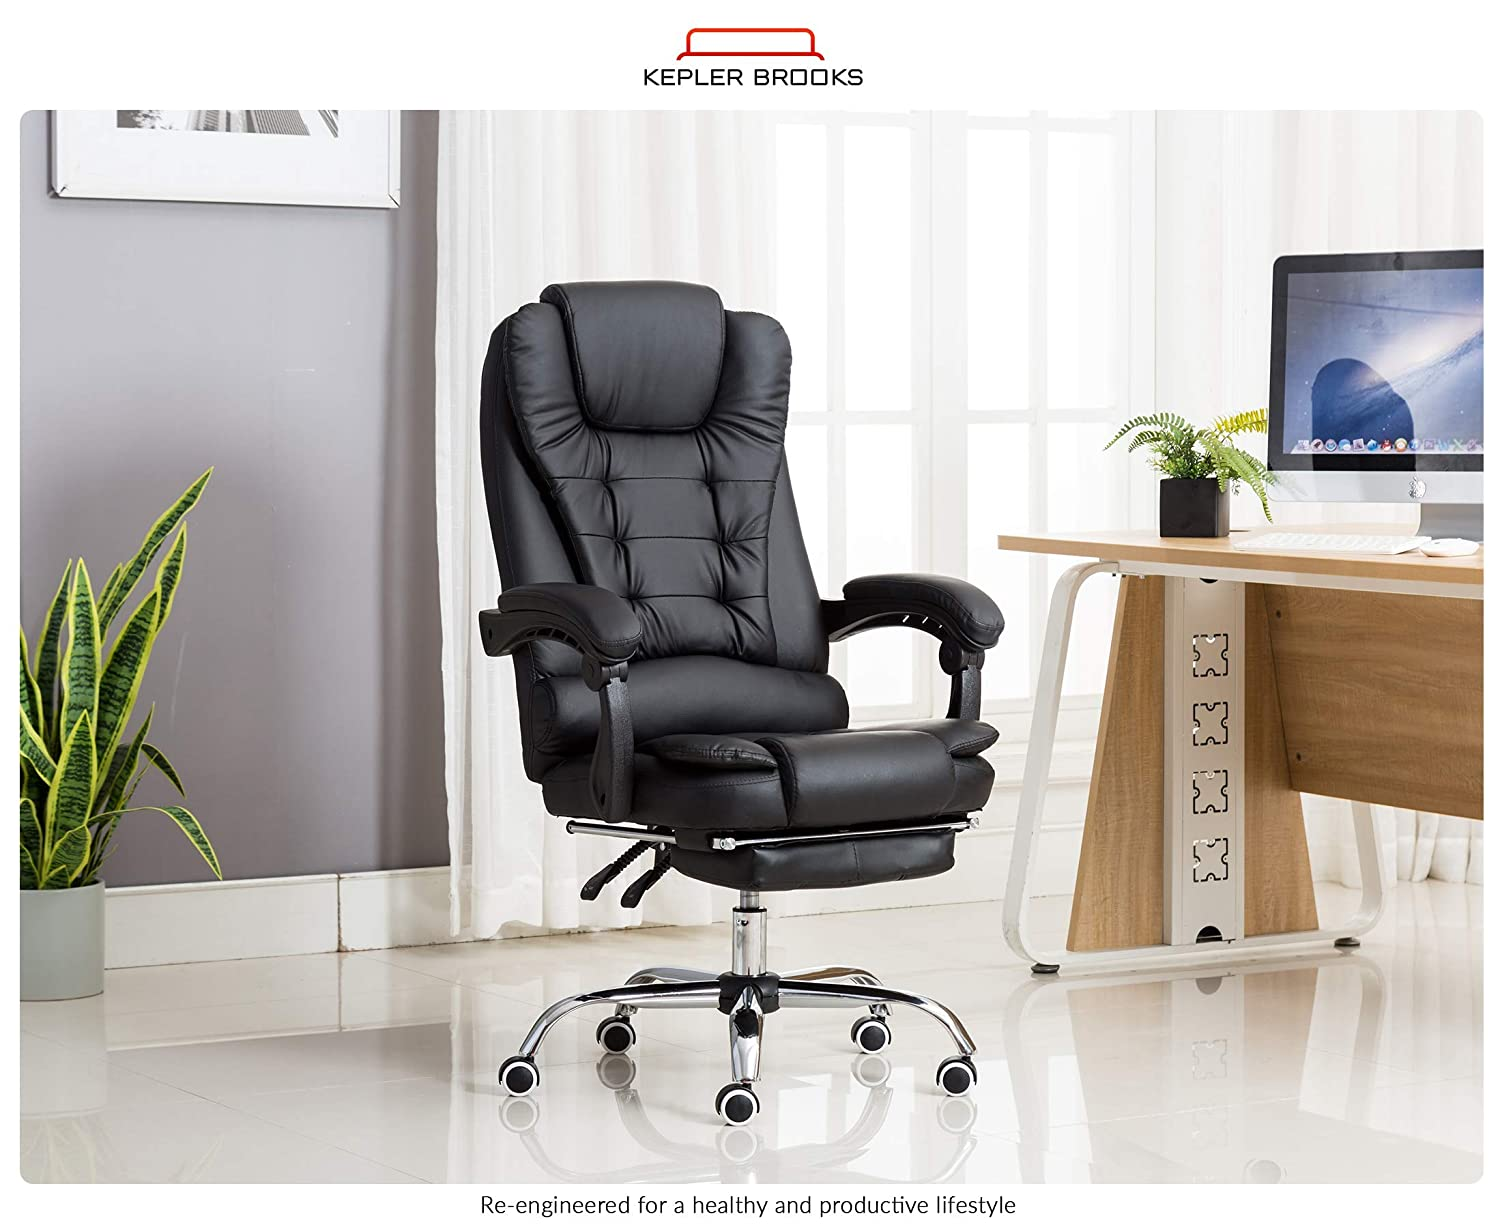 Kepler Brooks Italia High Back Reclining Office Chair with Leg Rest review